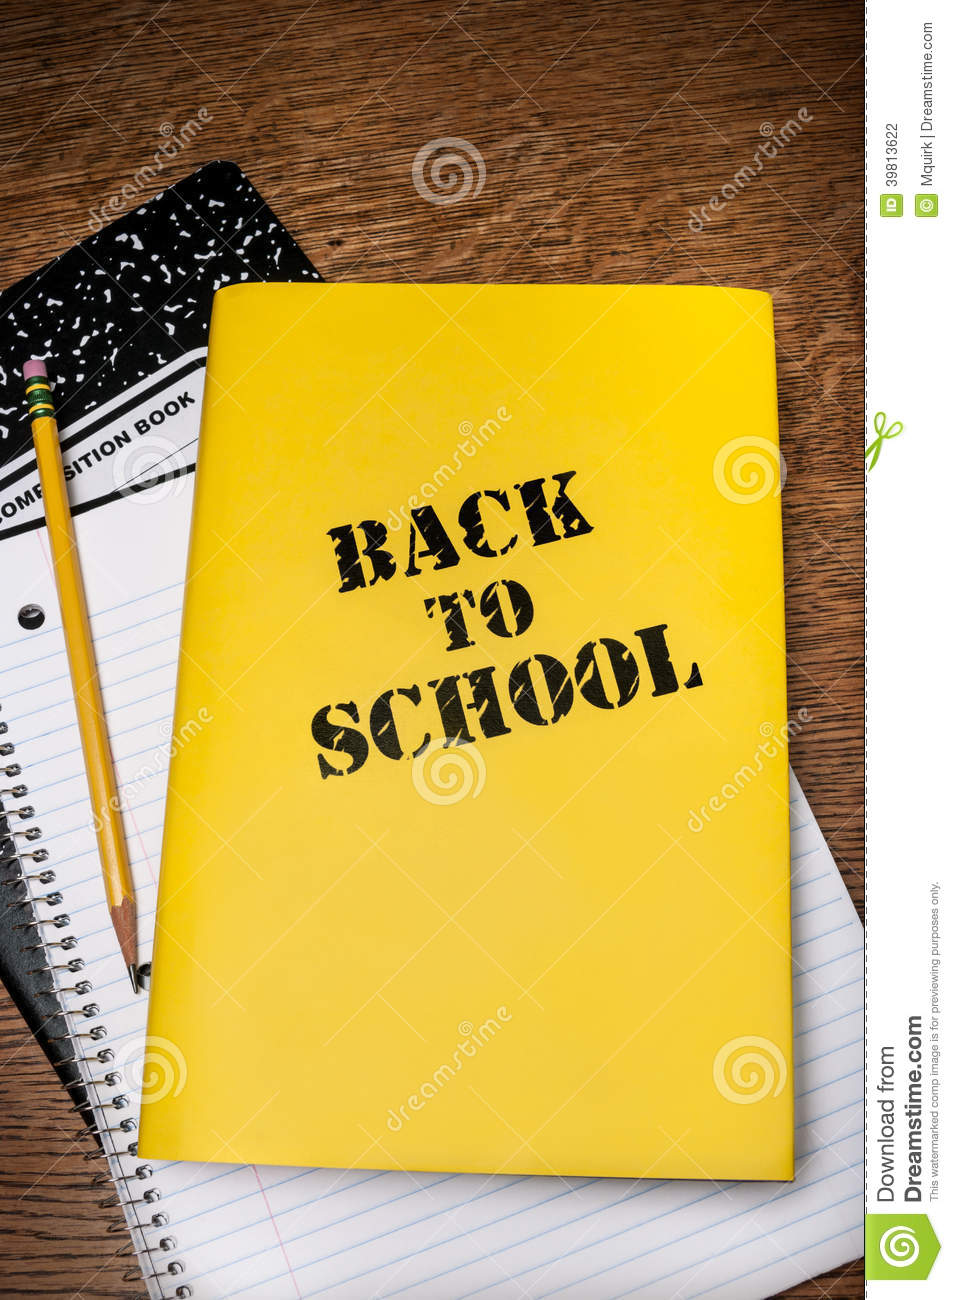 Book With Black And Yellow Cover : Back to school book with notepad stock photo image of